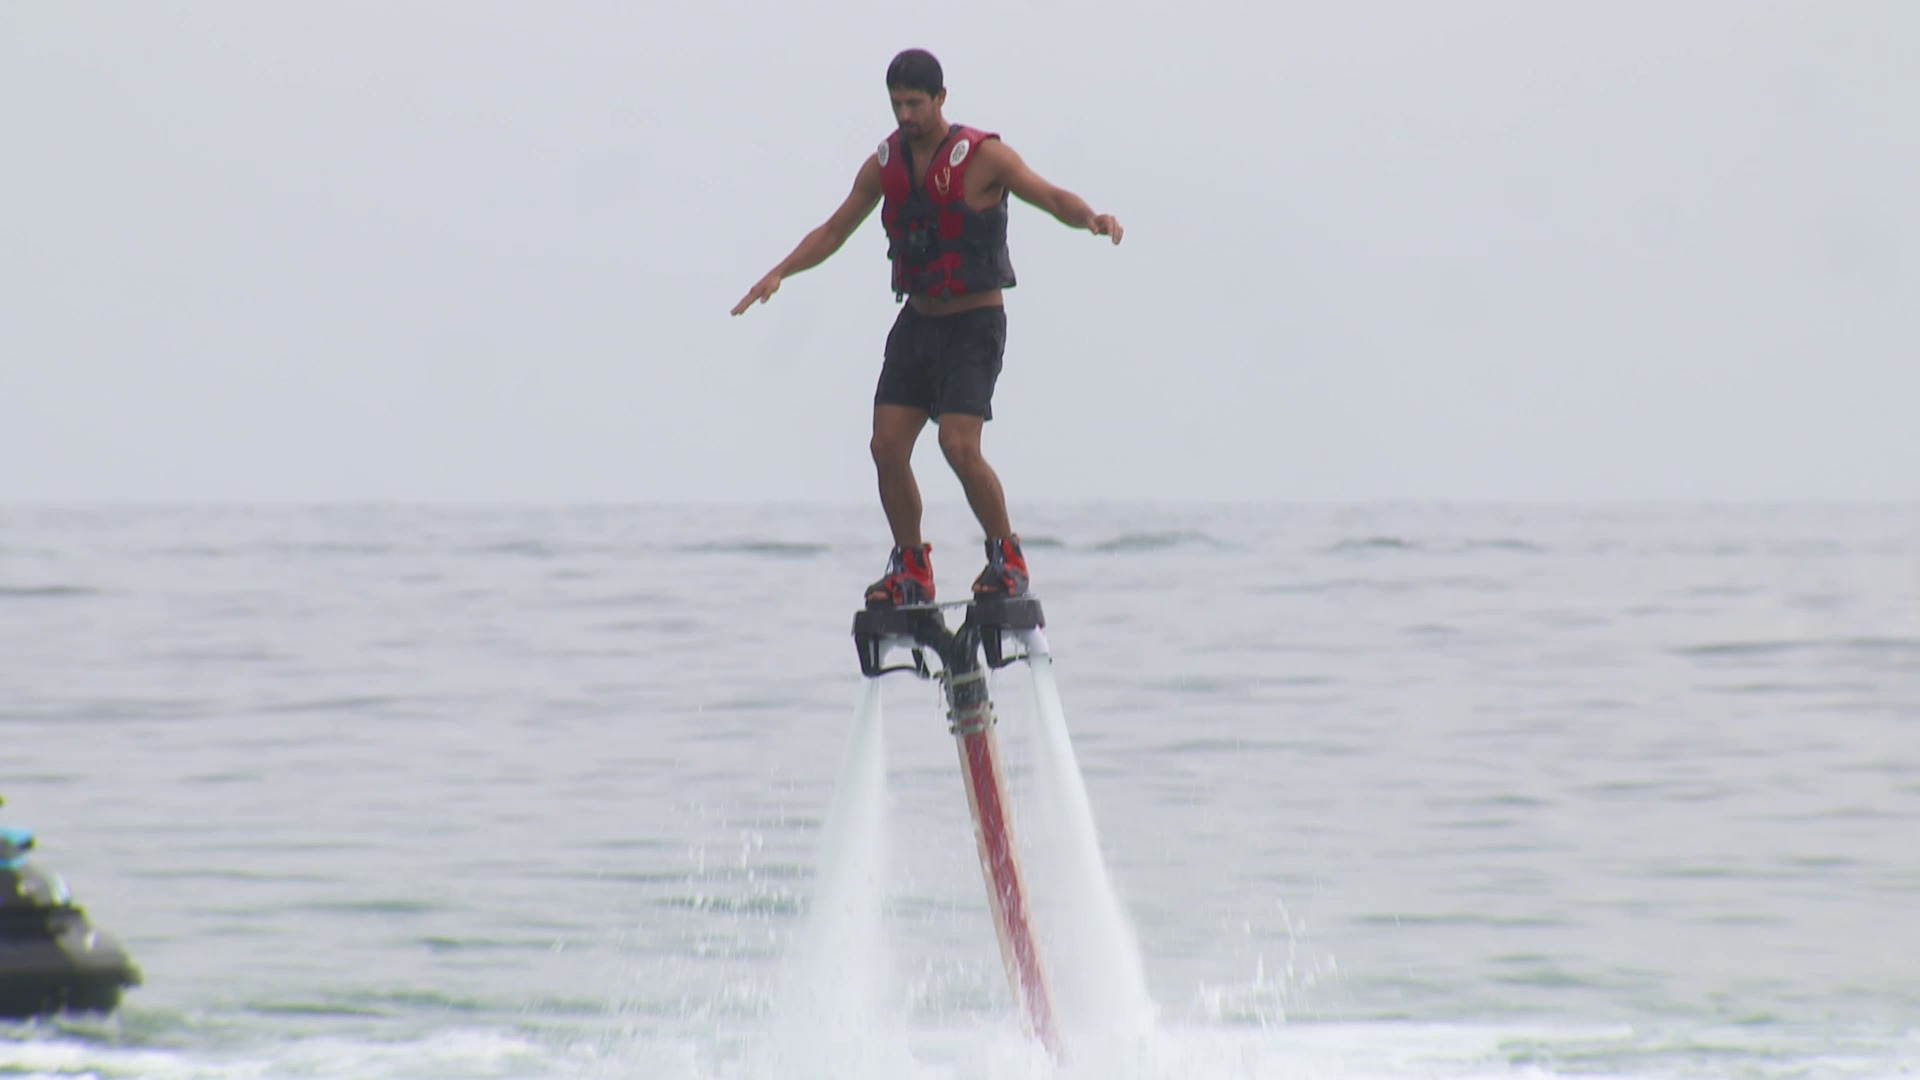 Welcome to Sanya: From racing to flyboarding